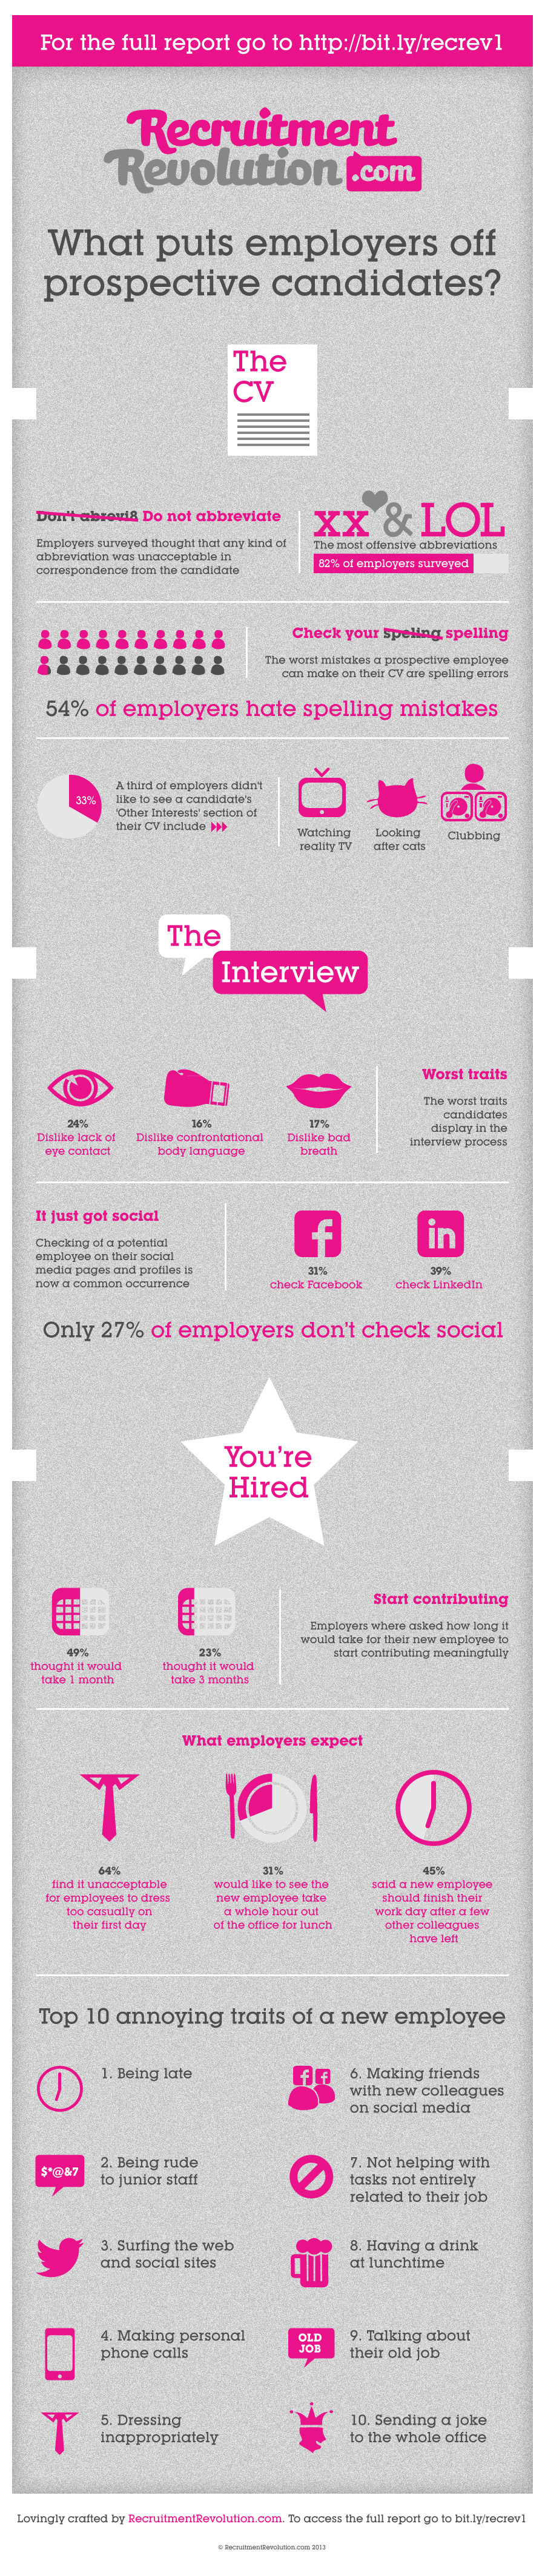 9. Employers reveal most off-putting traits displayed by job applicants